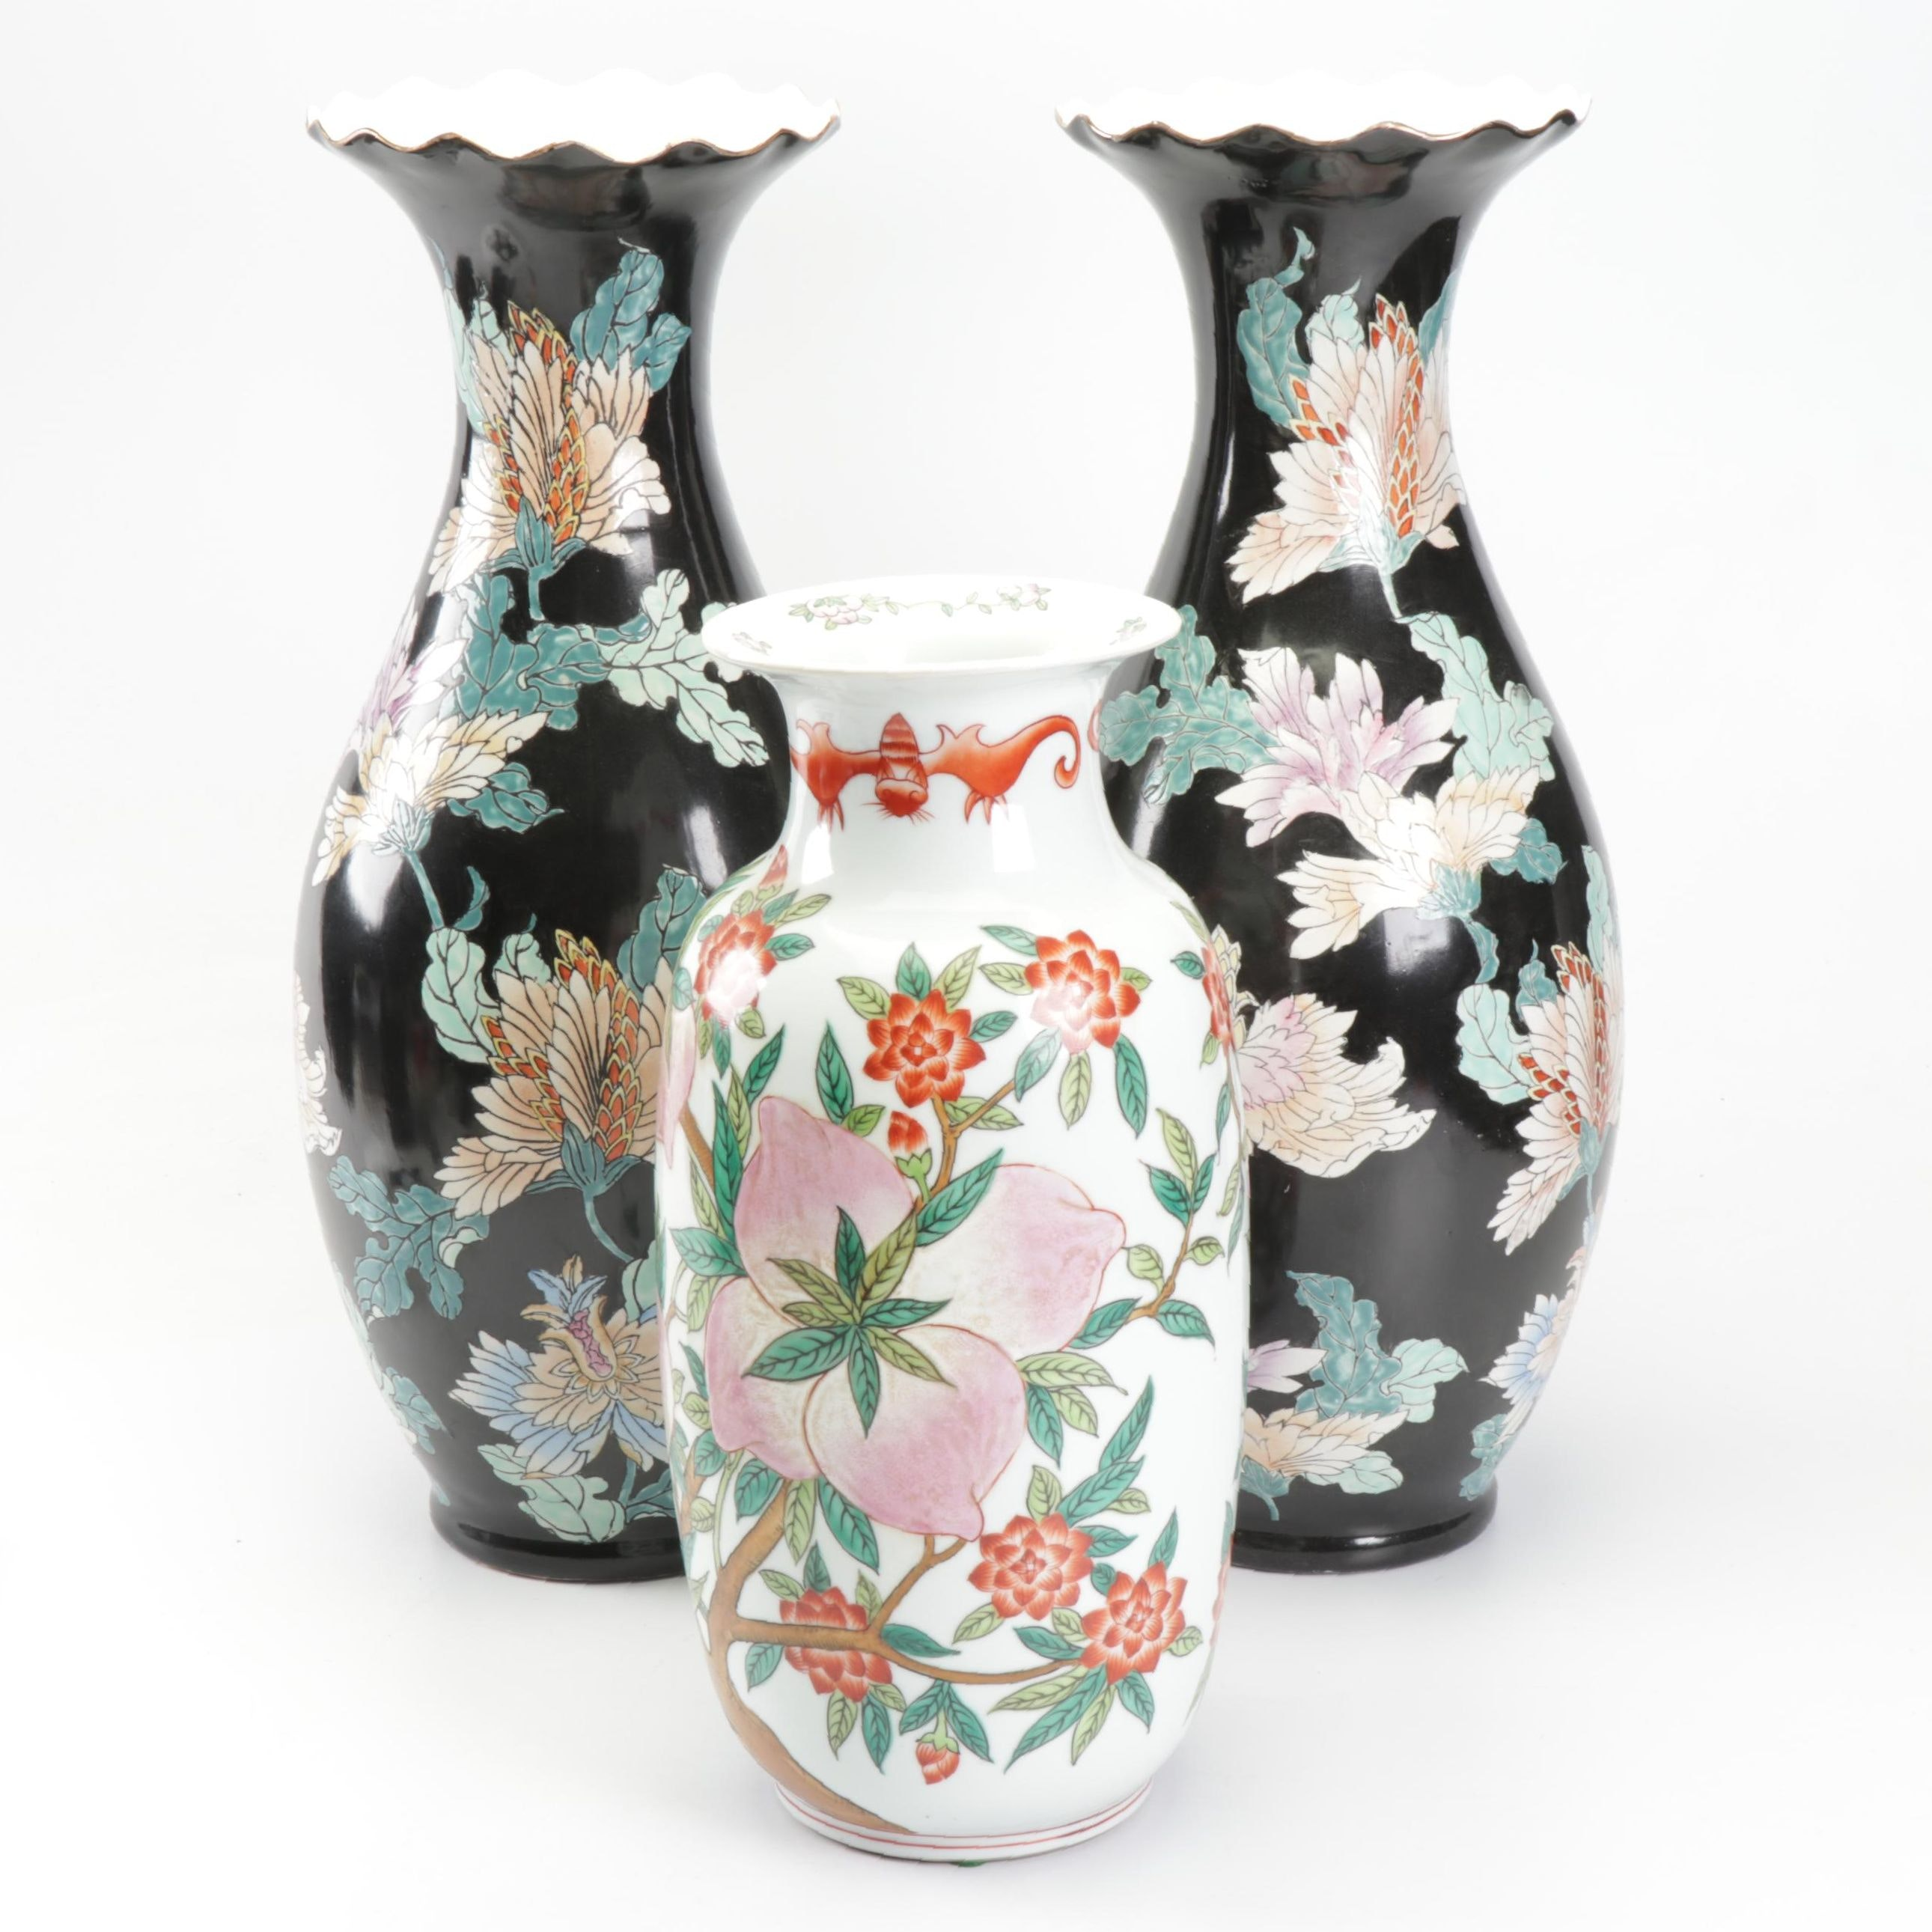 Maitland-Smith and Chinese Floral Porcelain Floor Vases